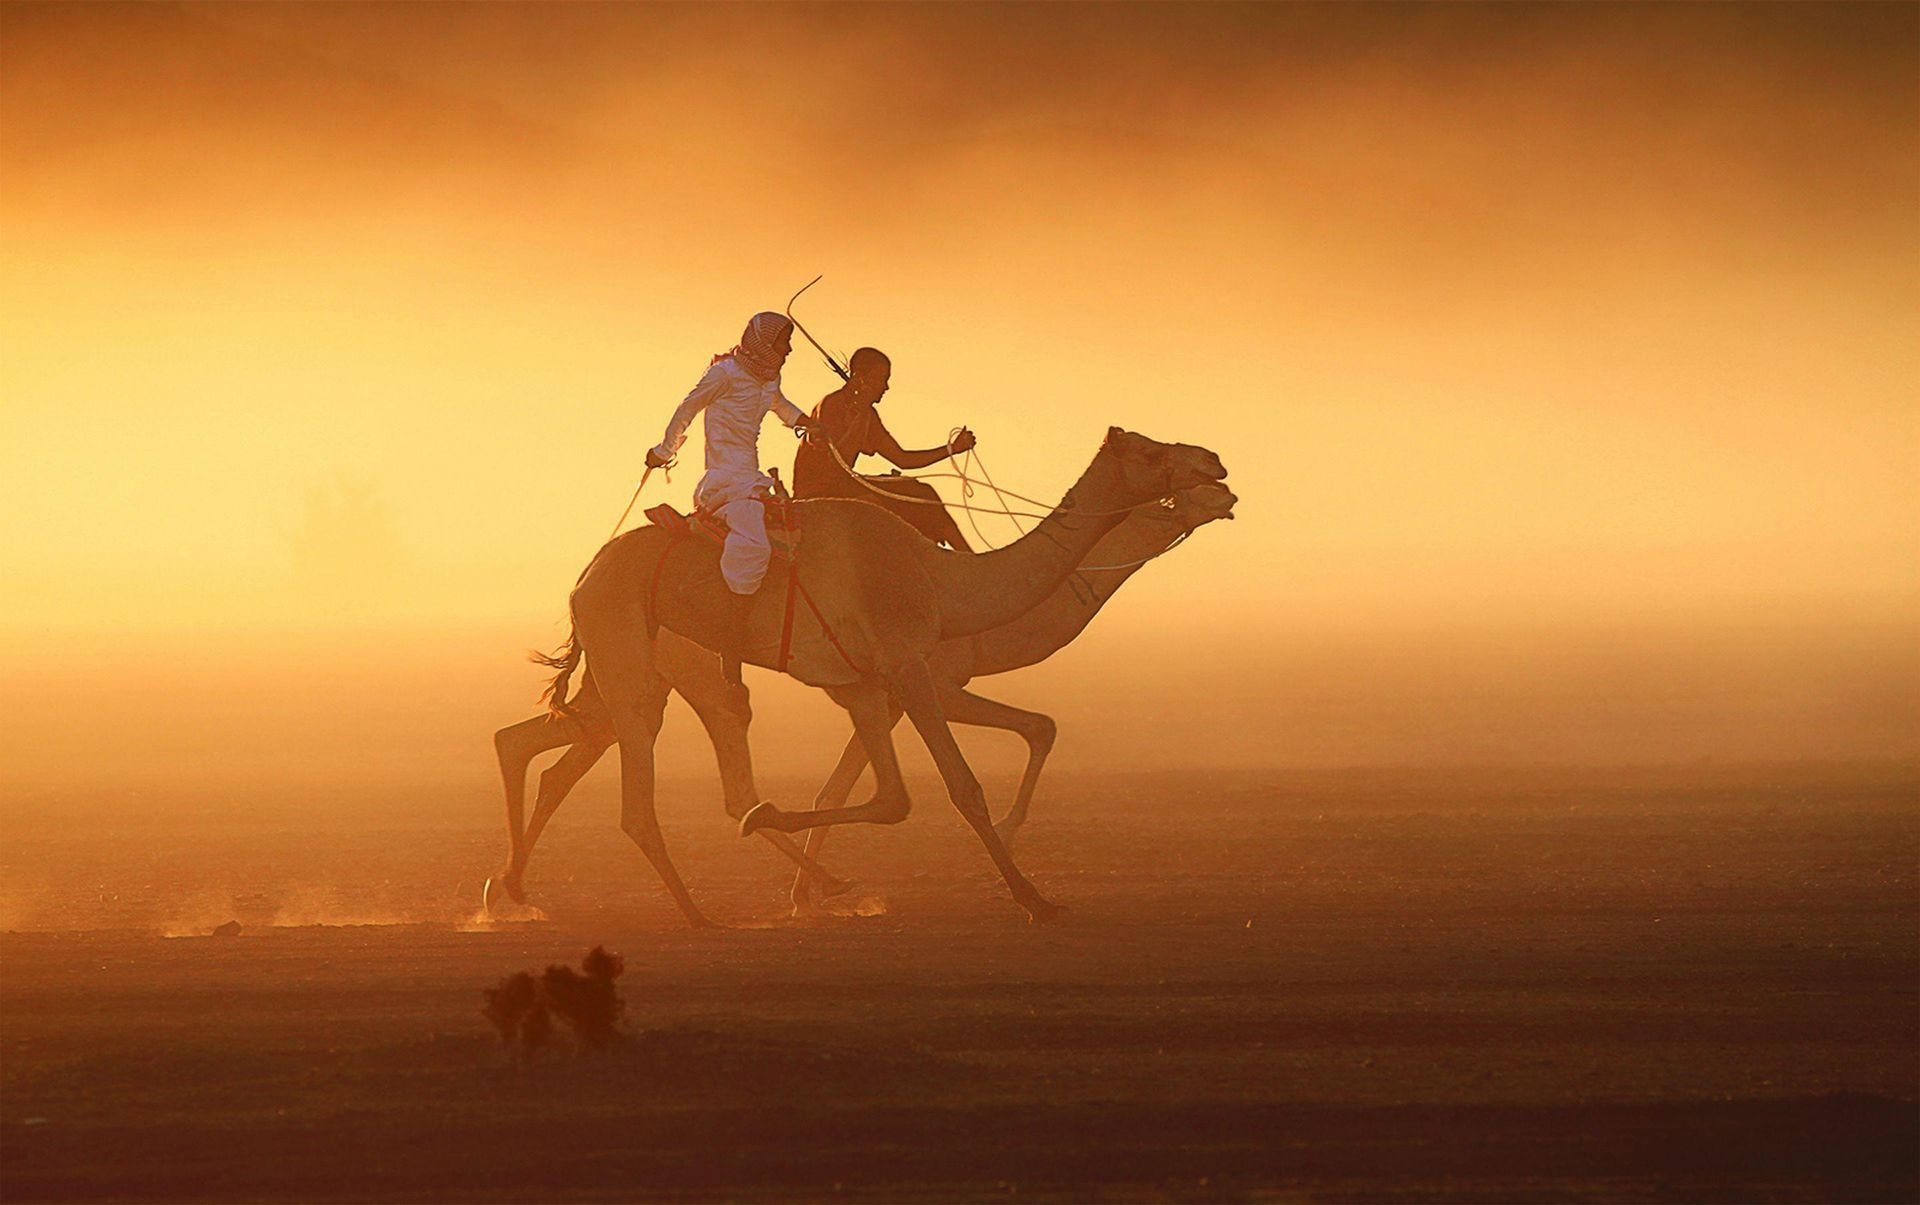 Photograph by Faisal Aljuhani, National Geographic Your Shot